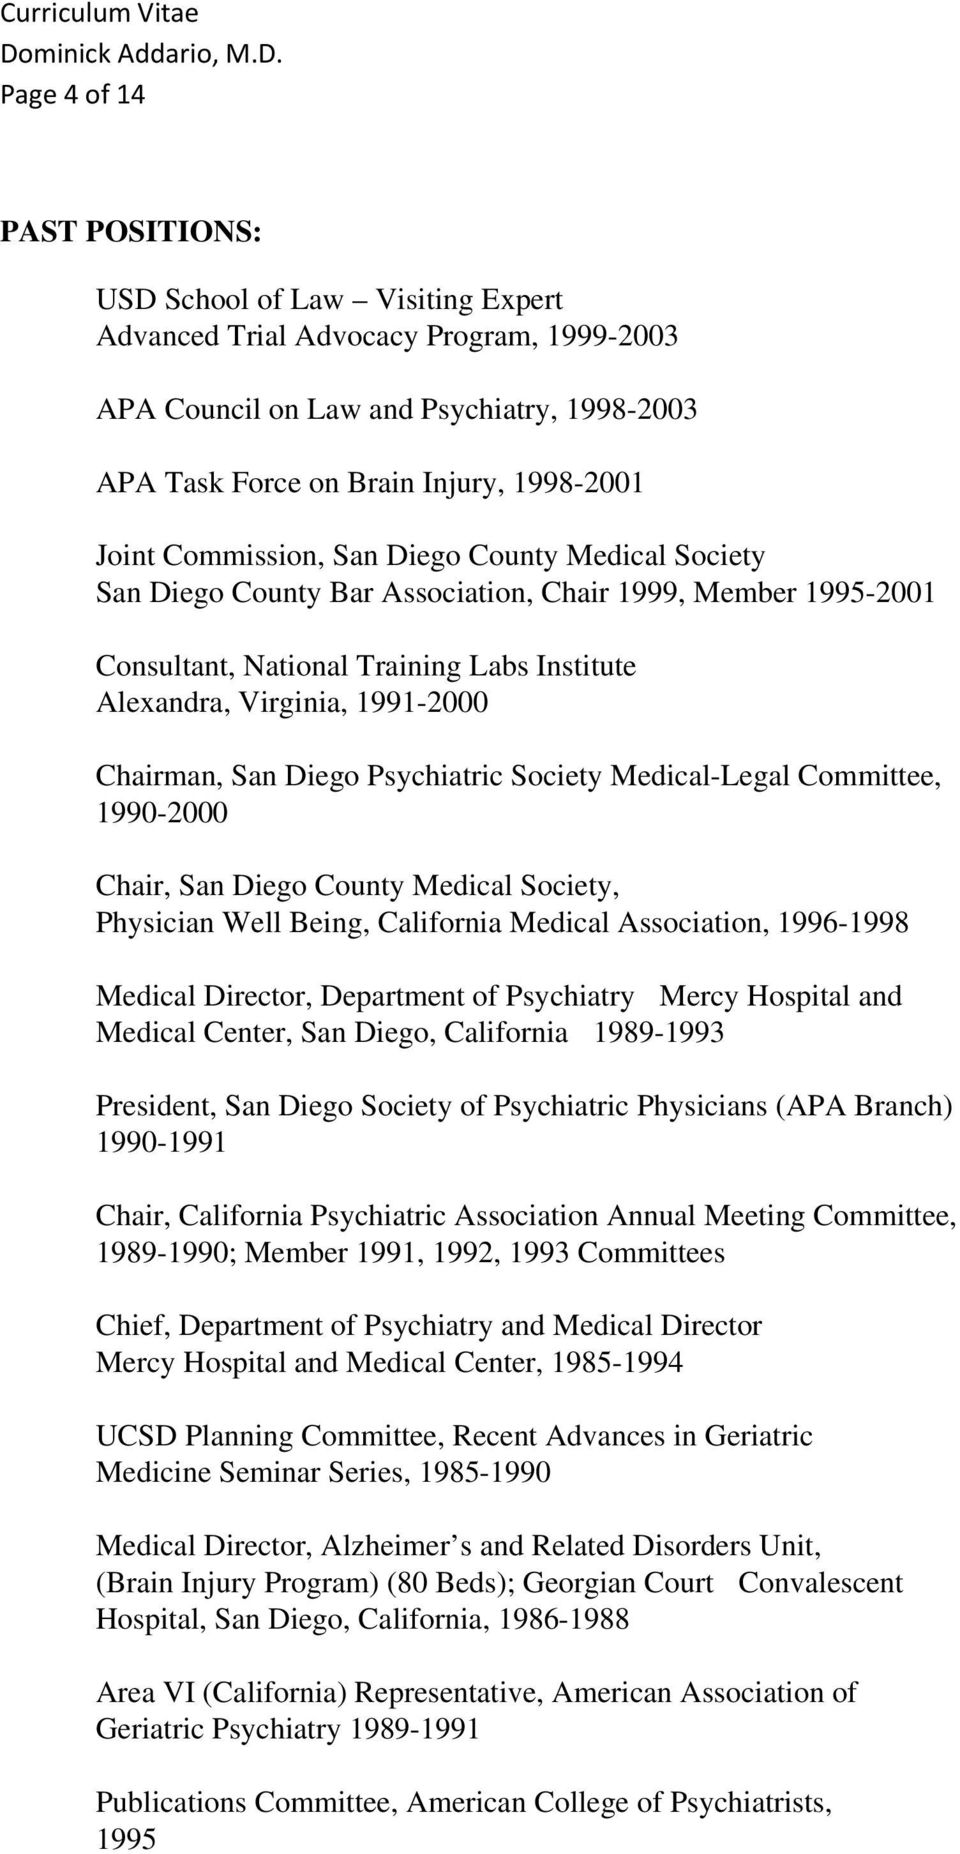 Diego Psychiatric Society Medical-Legal Committee, 1990-2000 Chair, San Diego County Medical Society, Physician Well Being, California Medical Association, 1996-1998 Medical Director, Department of